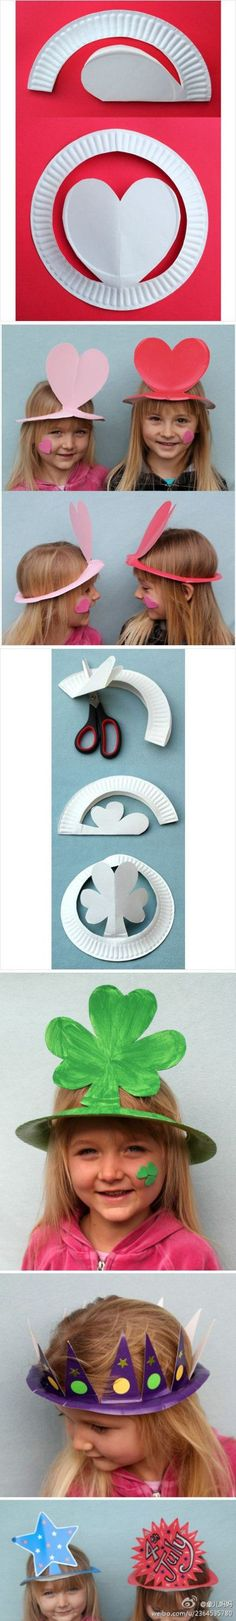 simple cut out crafts